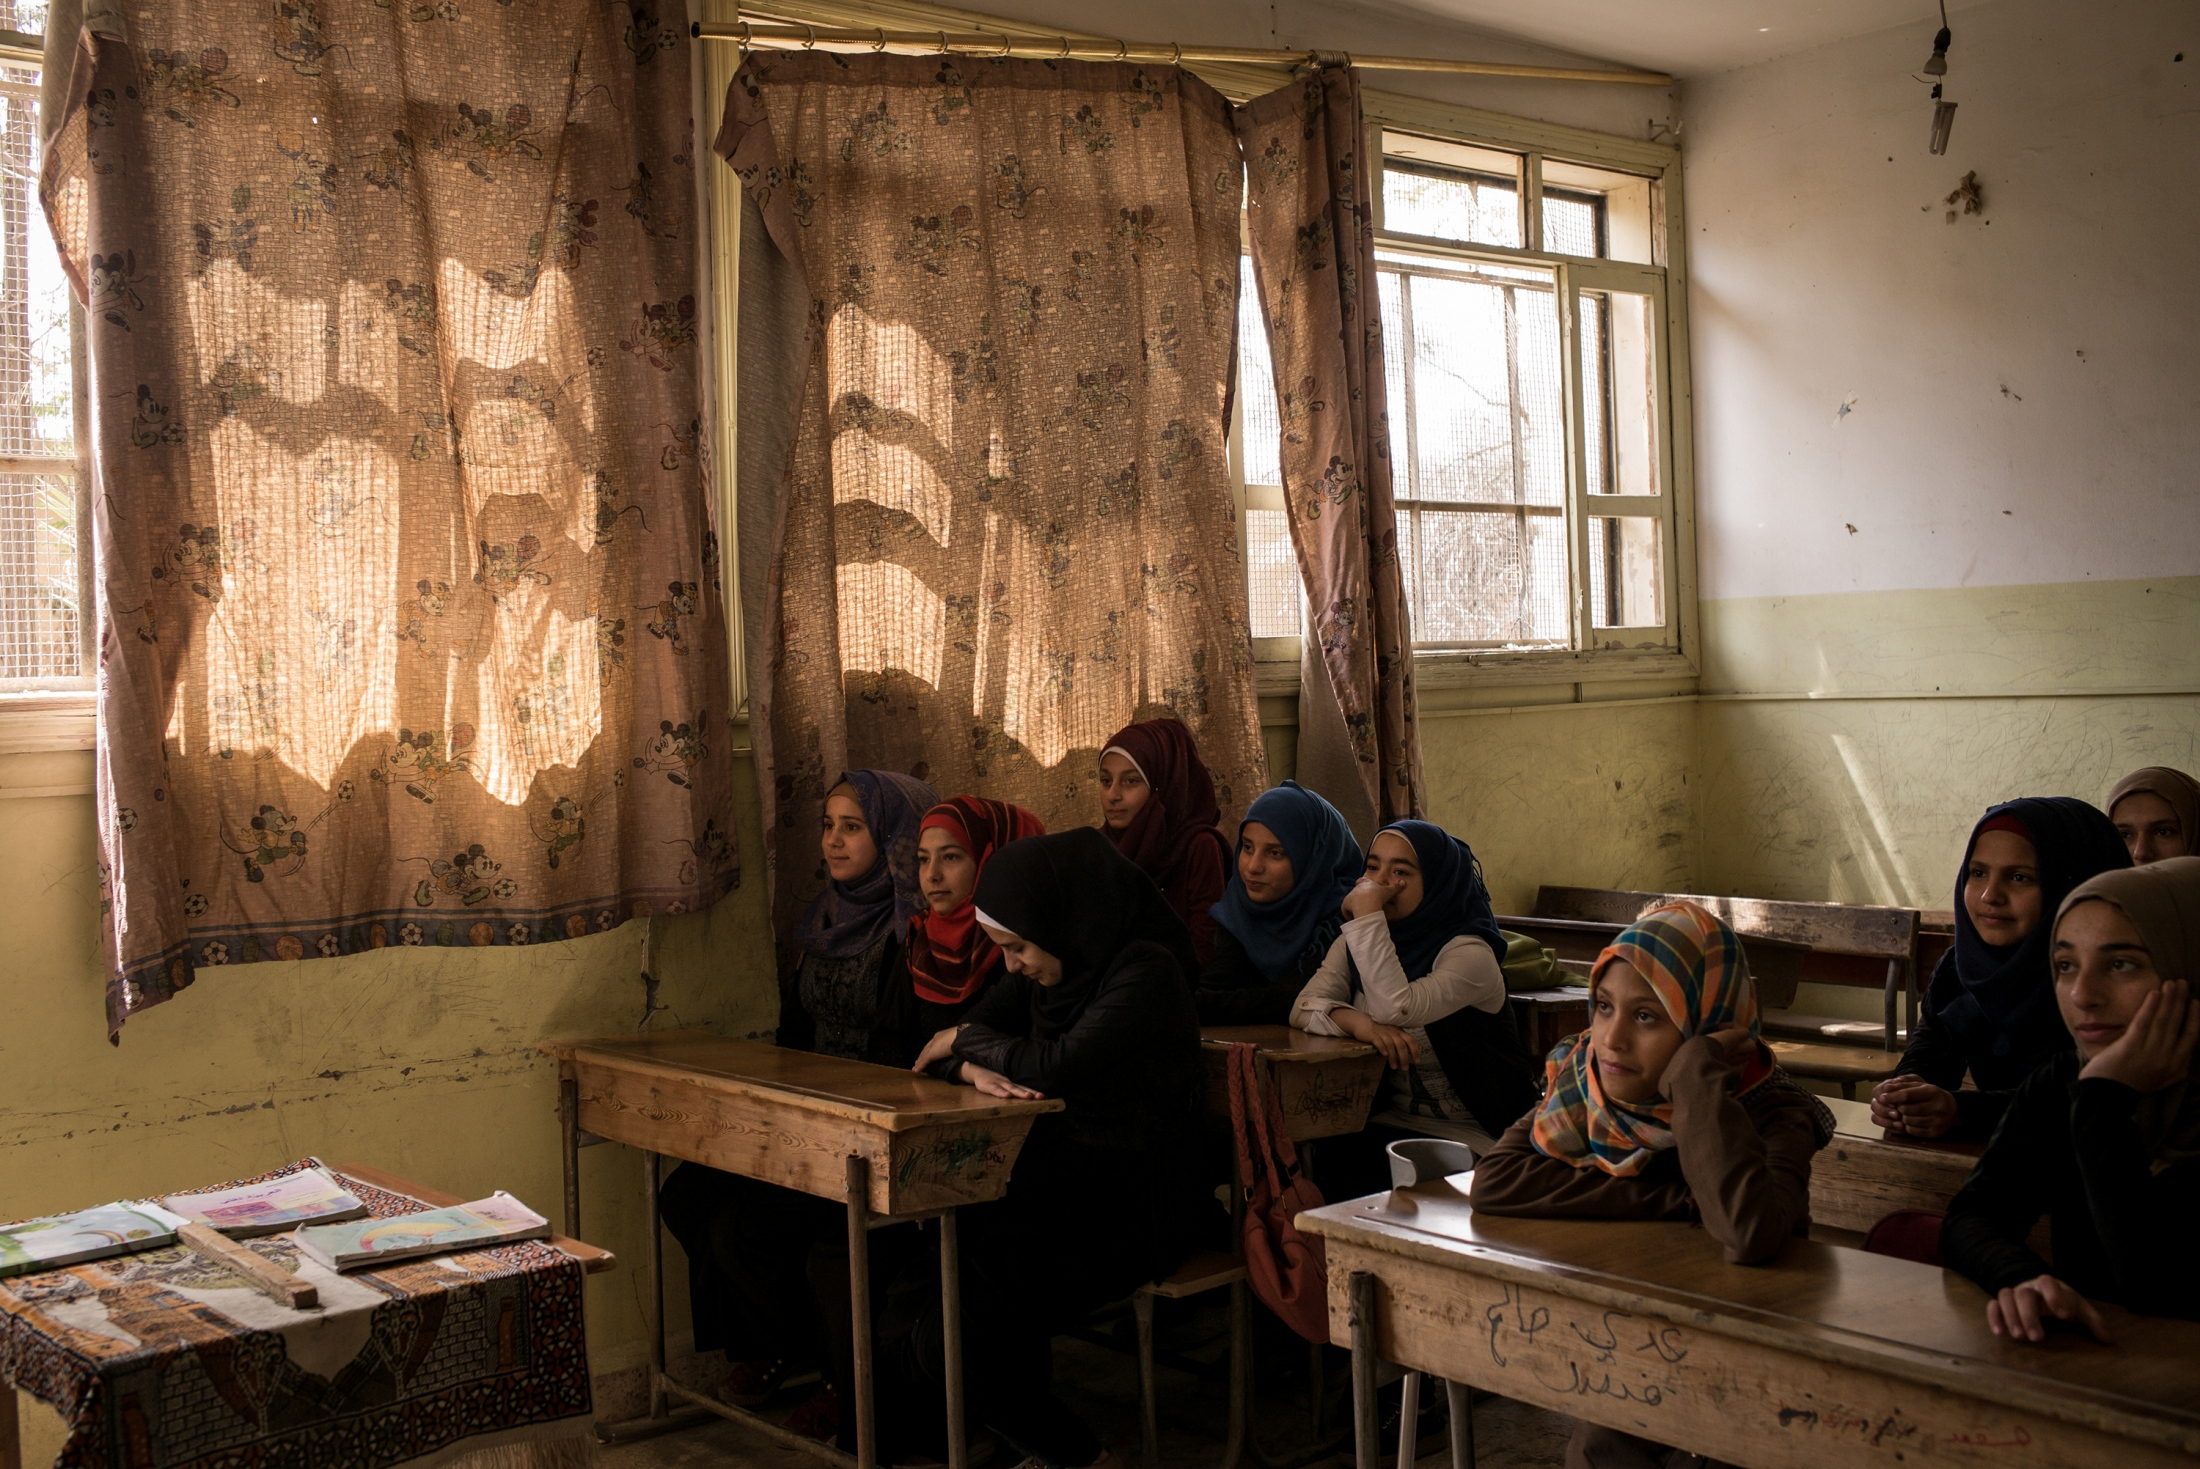 Female students are seen in class at the heavily damaged Hawari Bu Medyan School, in Raqqa, Syria, on Thursday, May 10, 2018. The school is located opposite a building that was used by ISIS's religious police, the Hisba, and was also the site of intense fighting during the offensive to retake the city from the extremist group. The school reopened in January 2018.